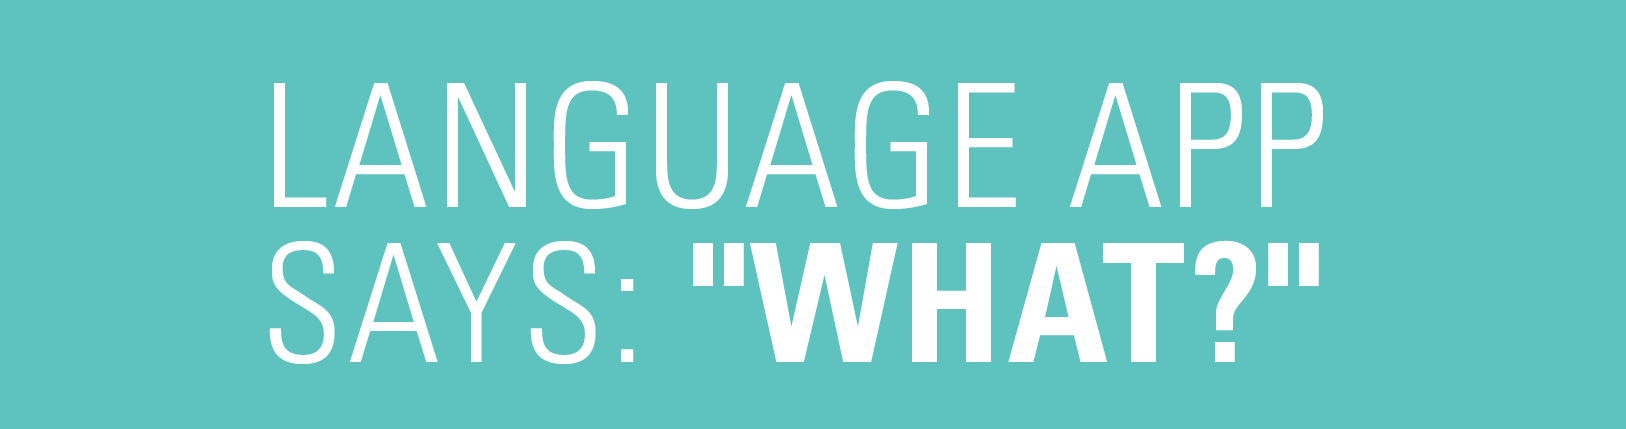 "Language App Says: ""What?"" – [Part 3]"